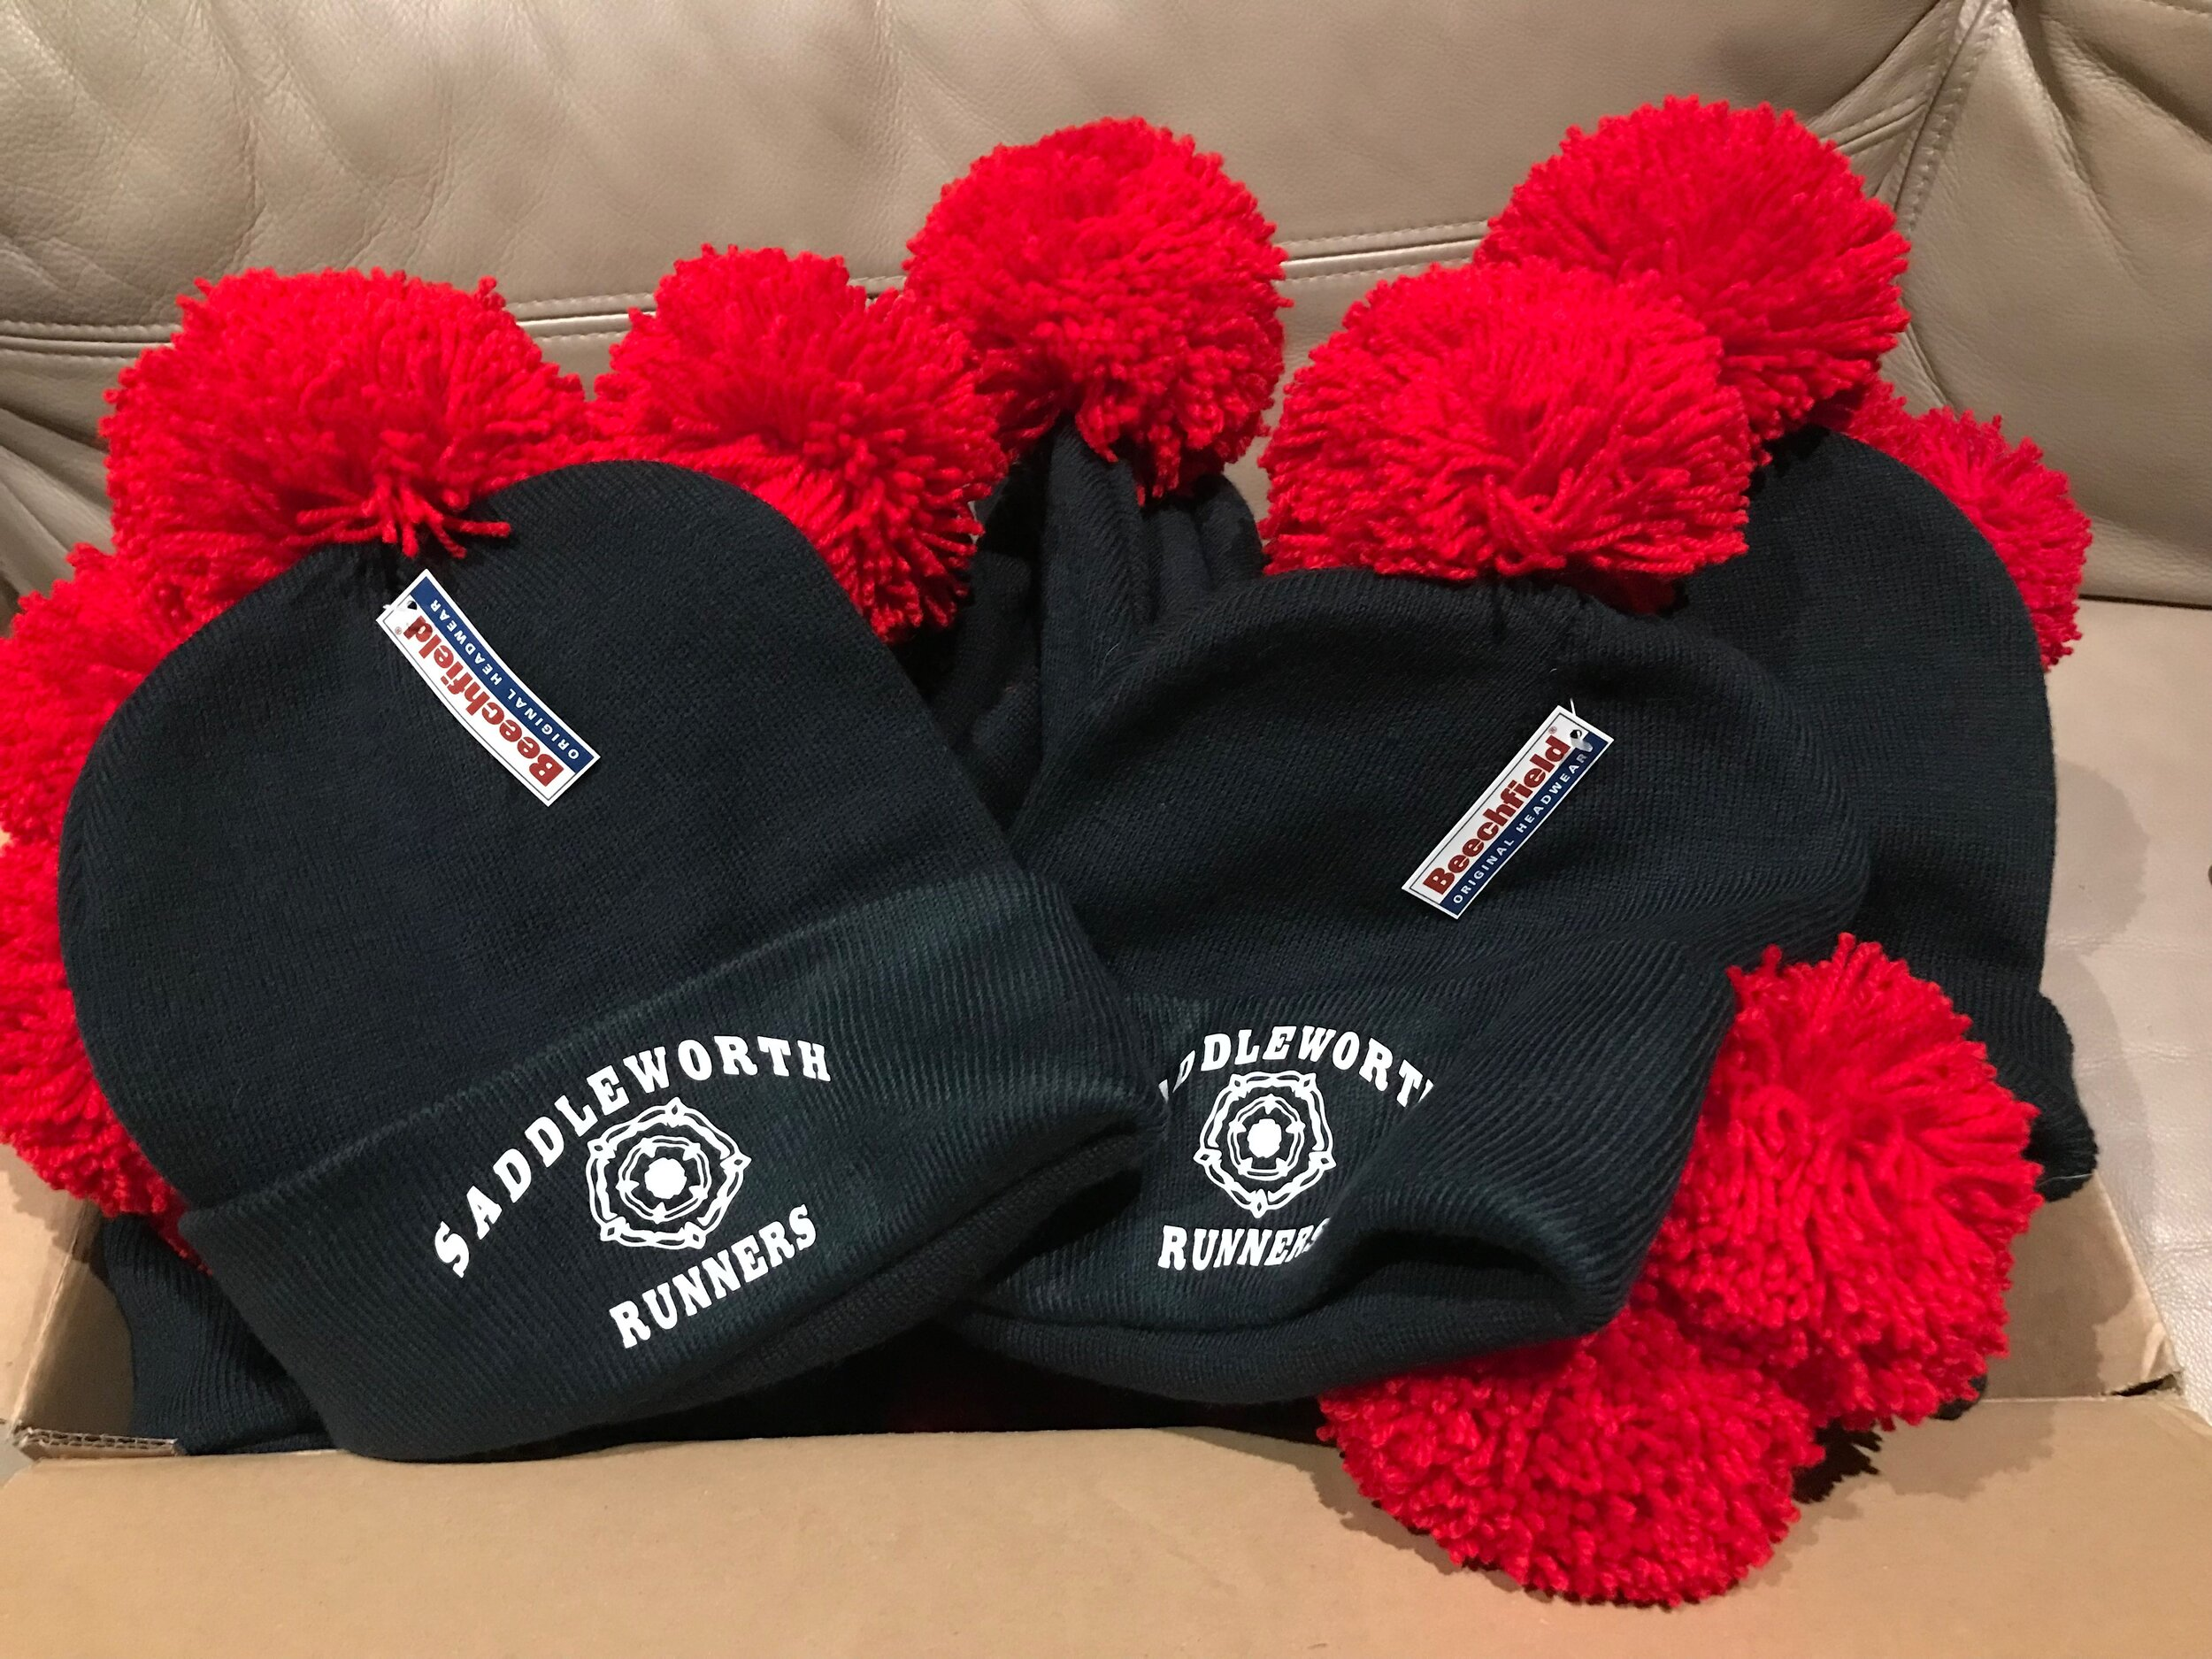 - Club Bobble Hats£11.50One size.